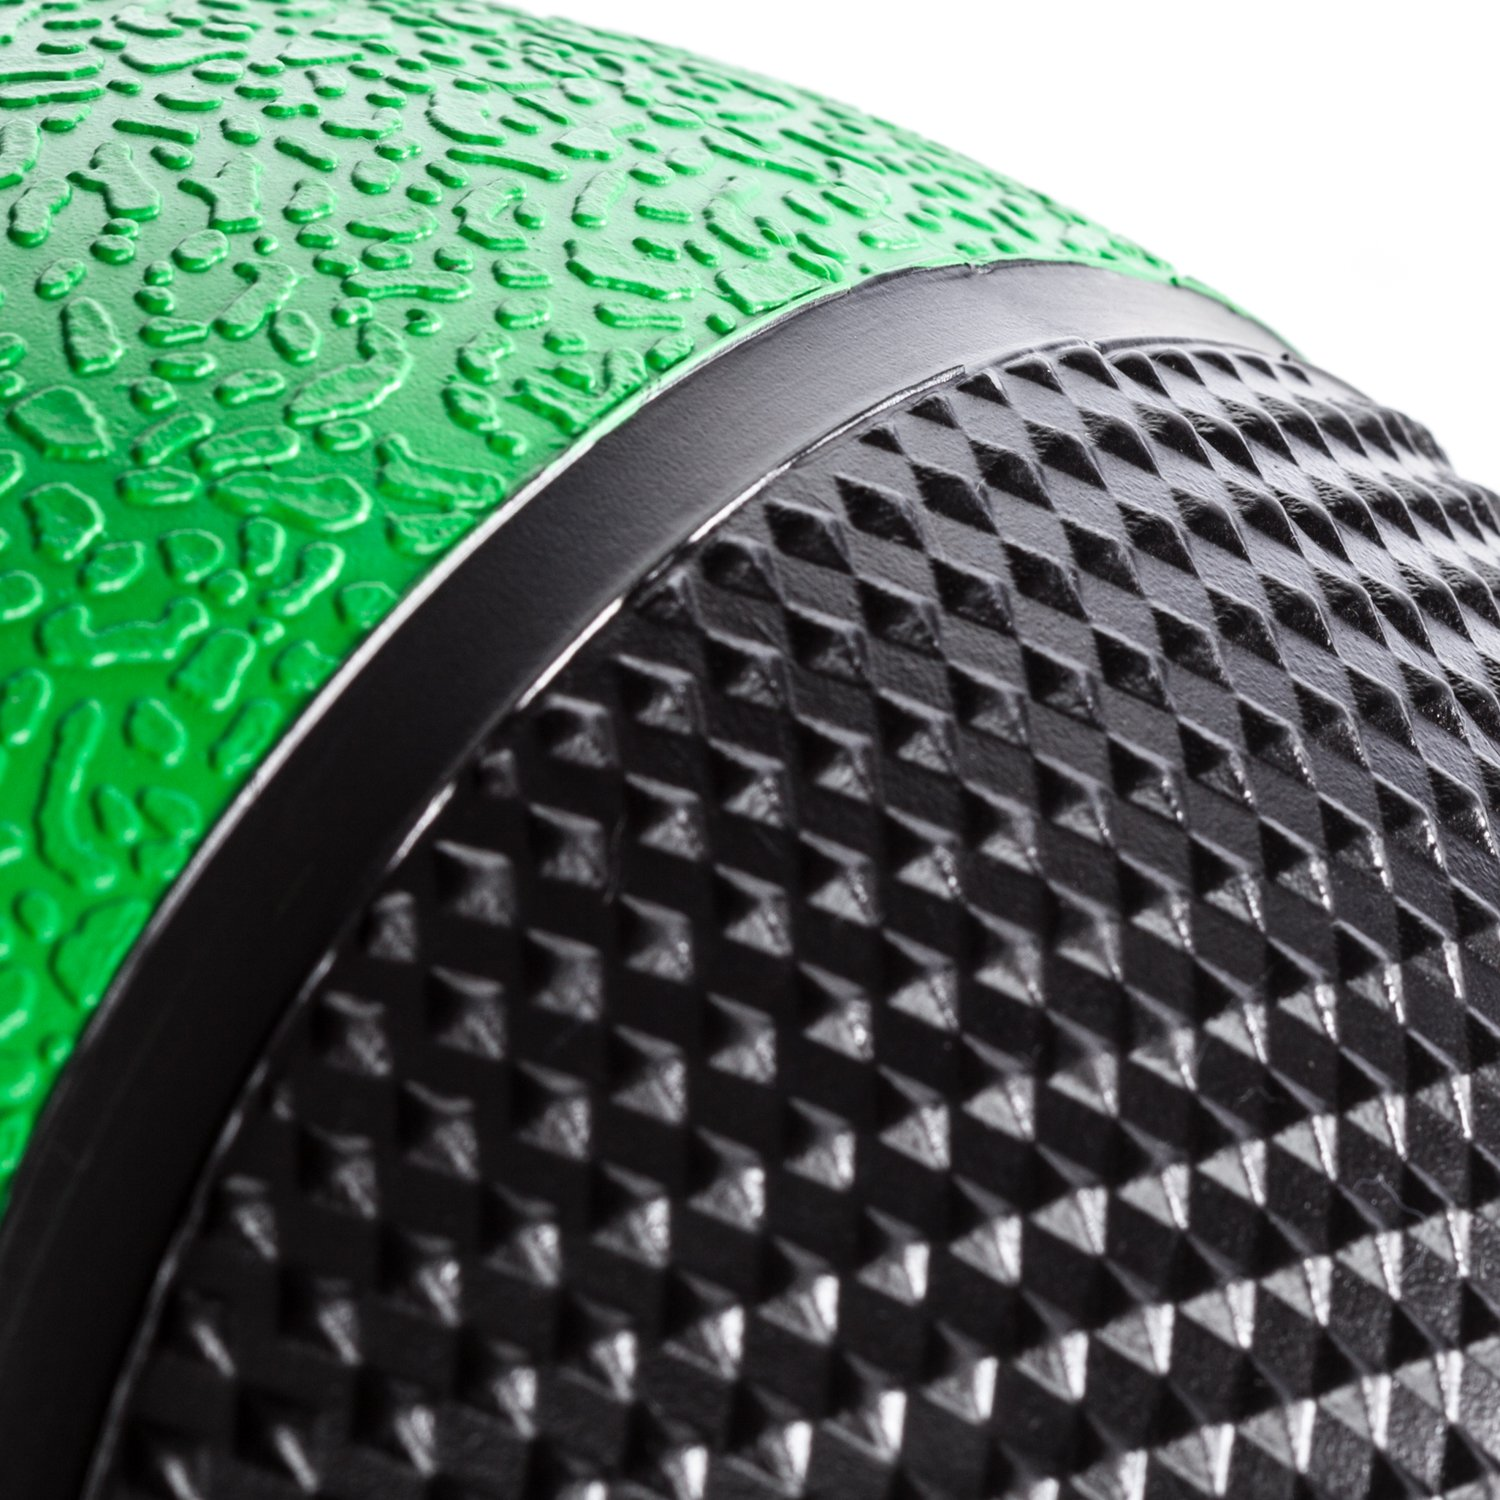 DYNAPRO Medicine Ball   Exercise Ball, Durable Rubber, Consistent Weight Distribution, Comfort Textured Grip for Strength Training (Green- 6LB) by DYNAPRO (Image #3)